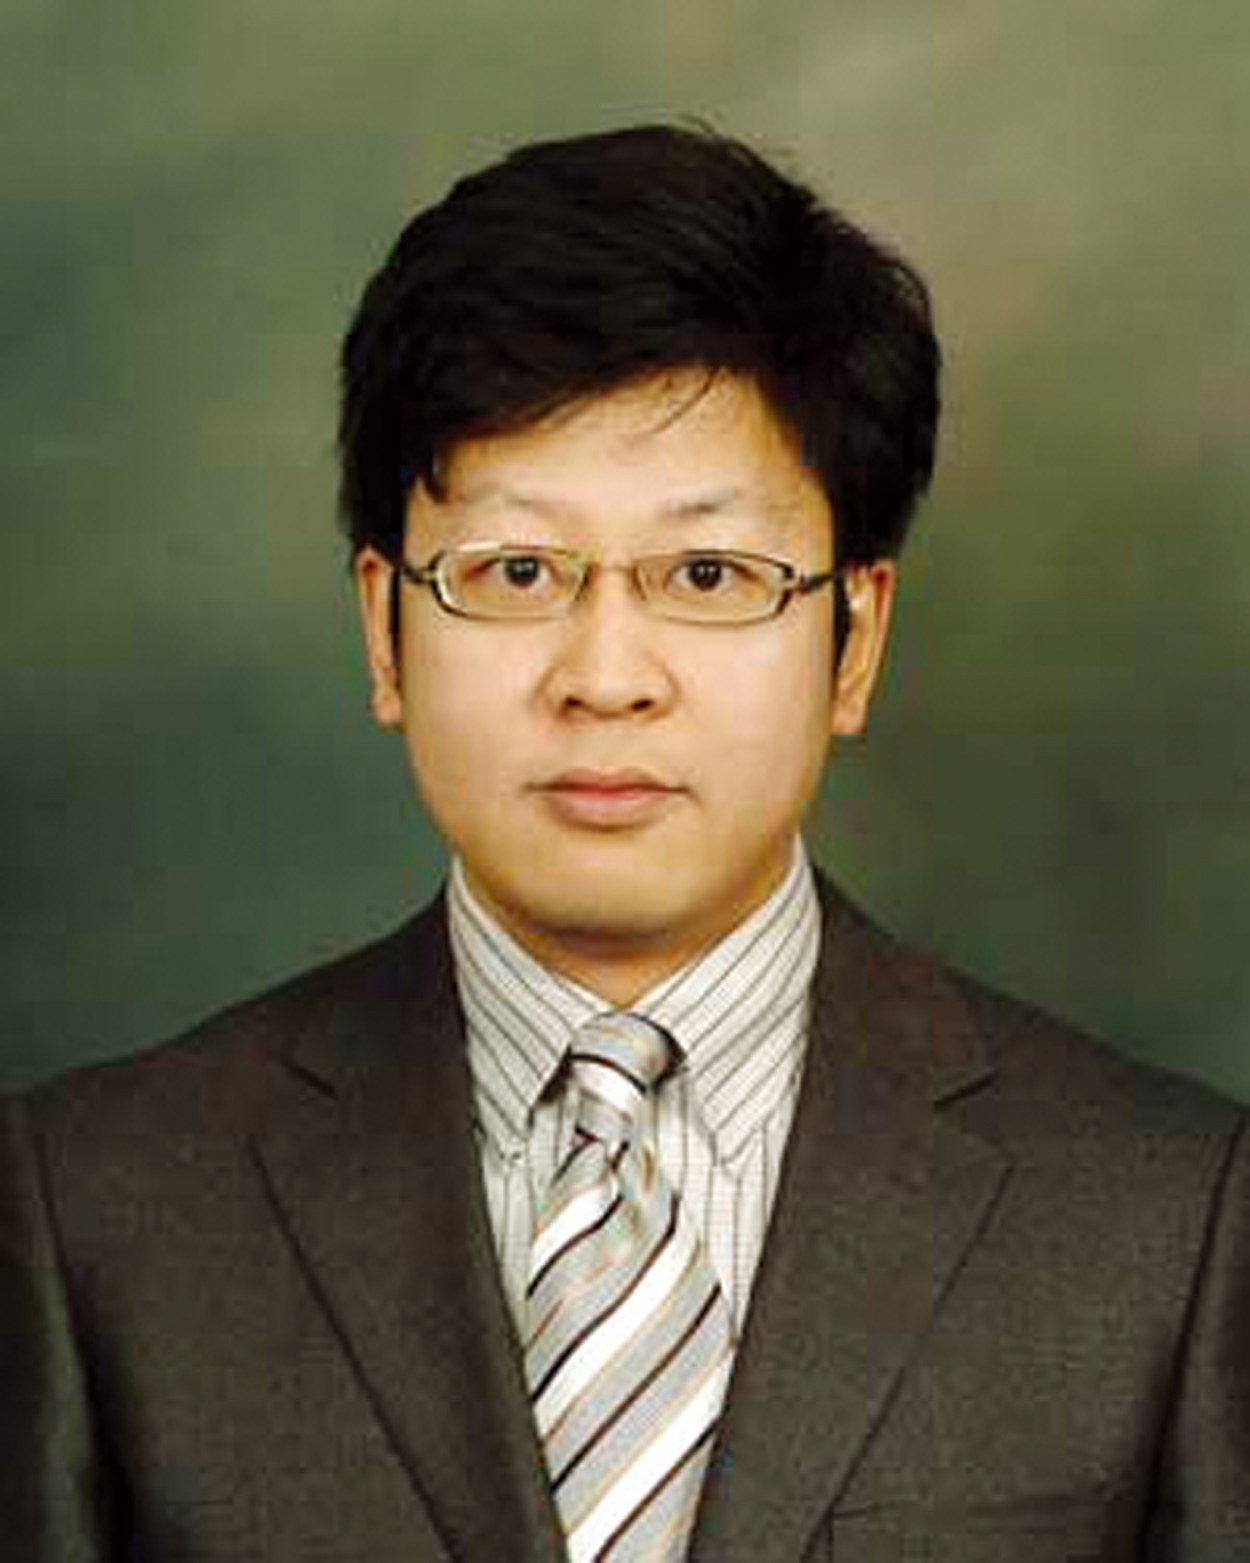 Photo of Myung Jae Jeon